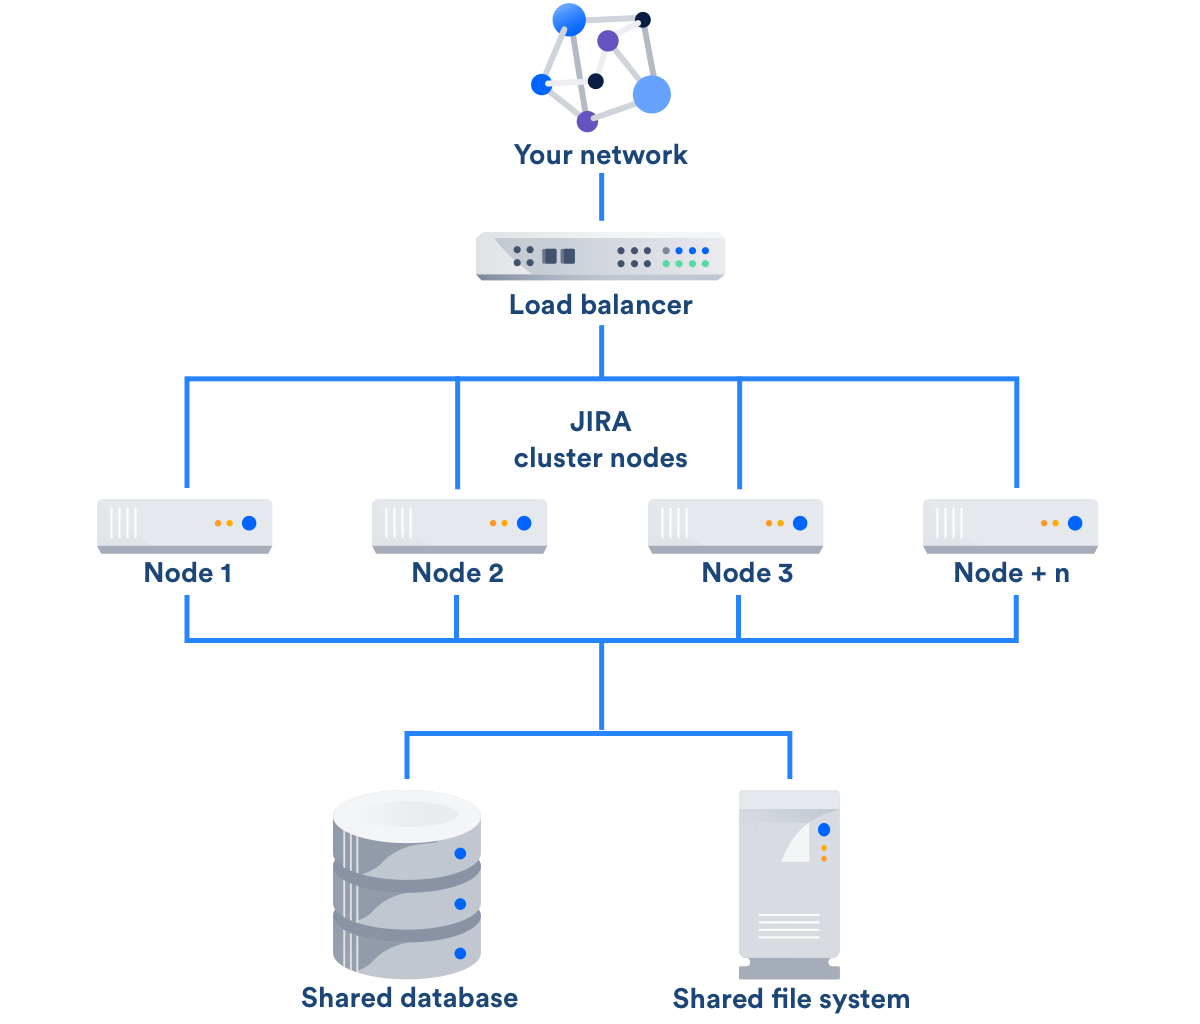 Jira DataCenter - what is it? How does it work? How to deploy?